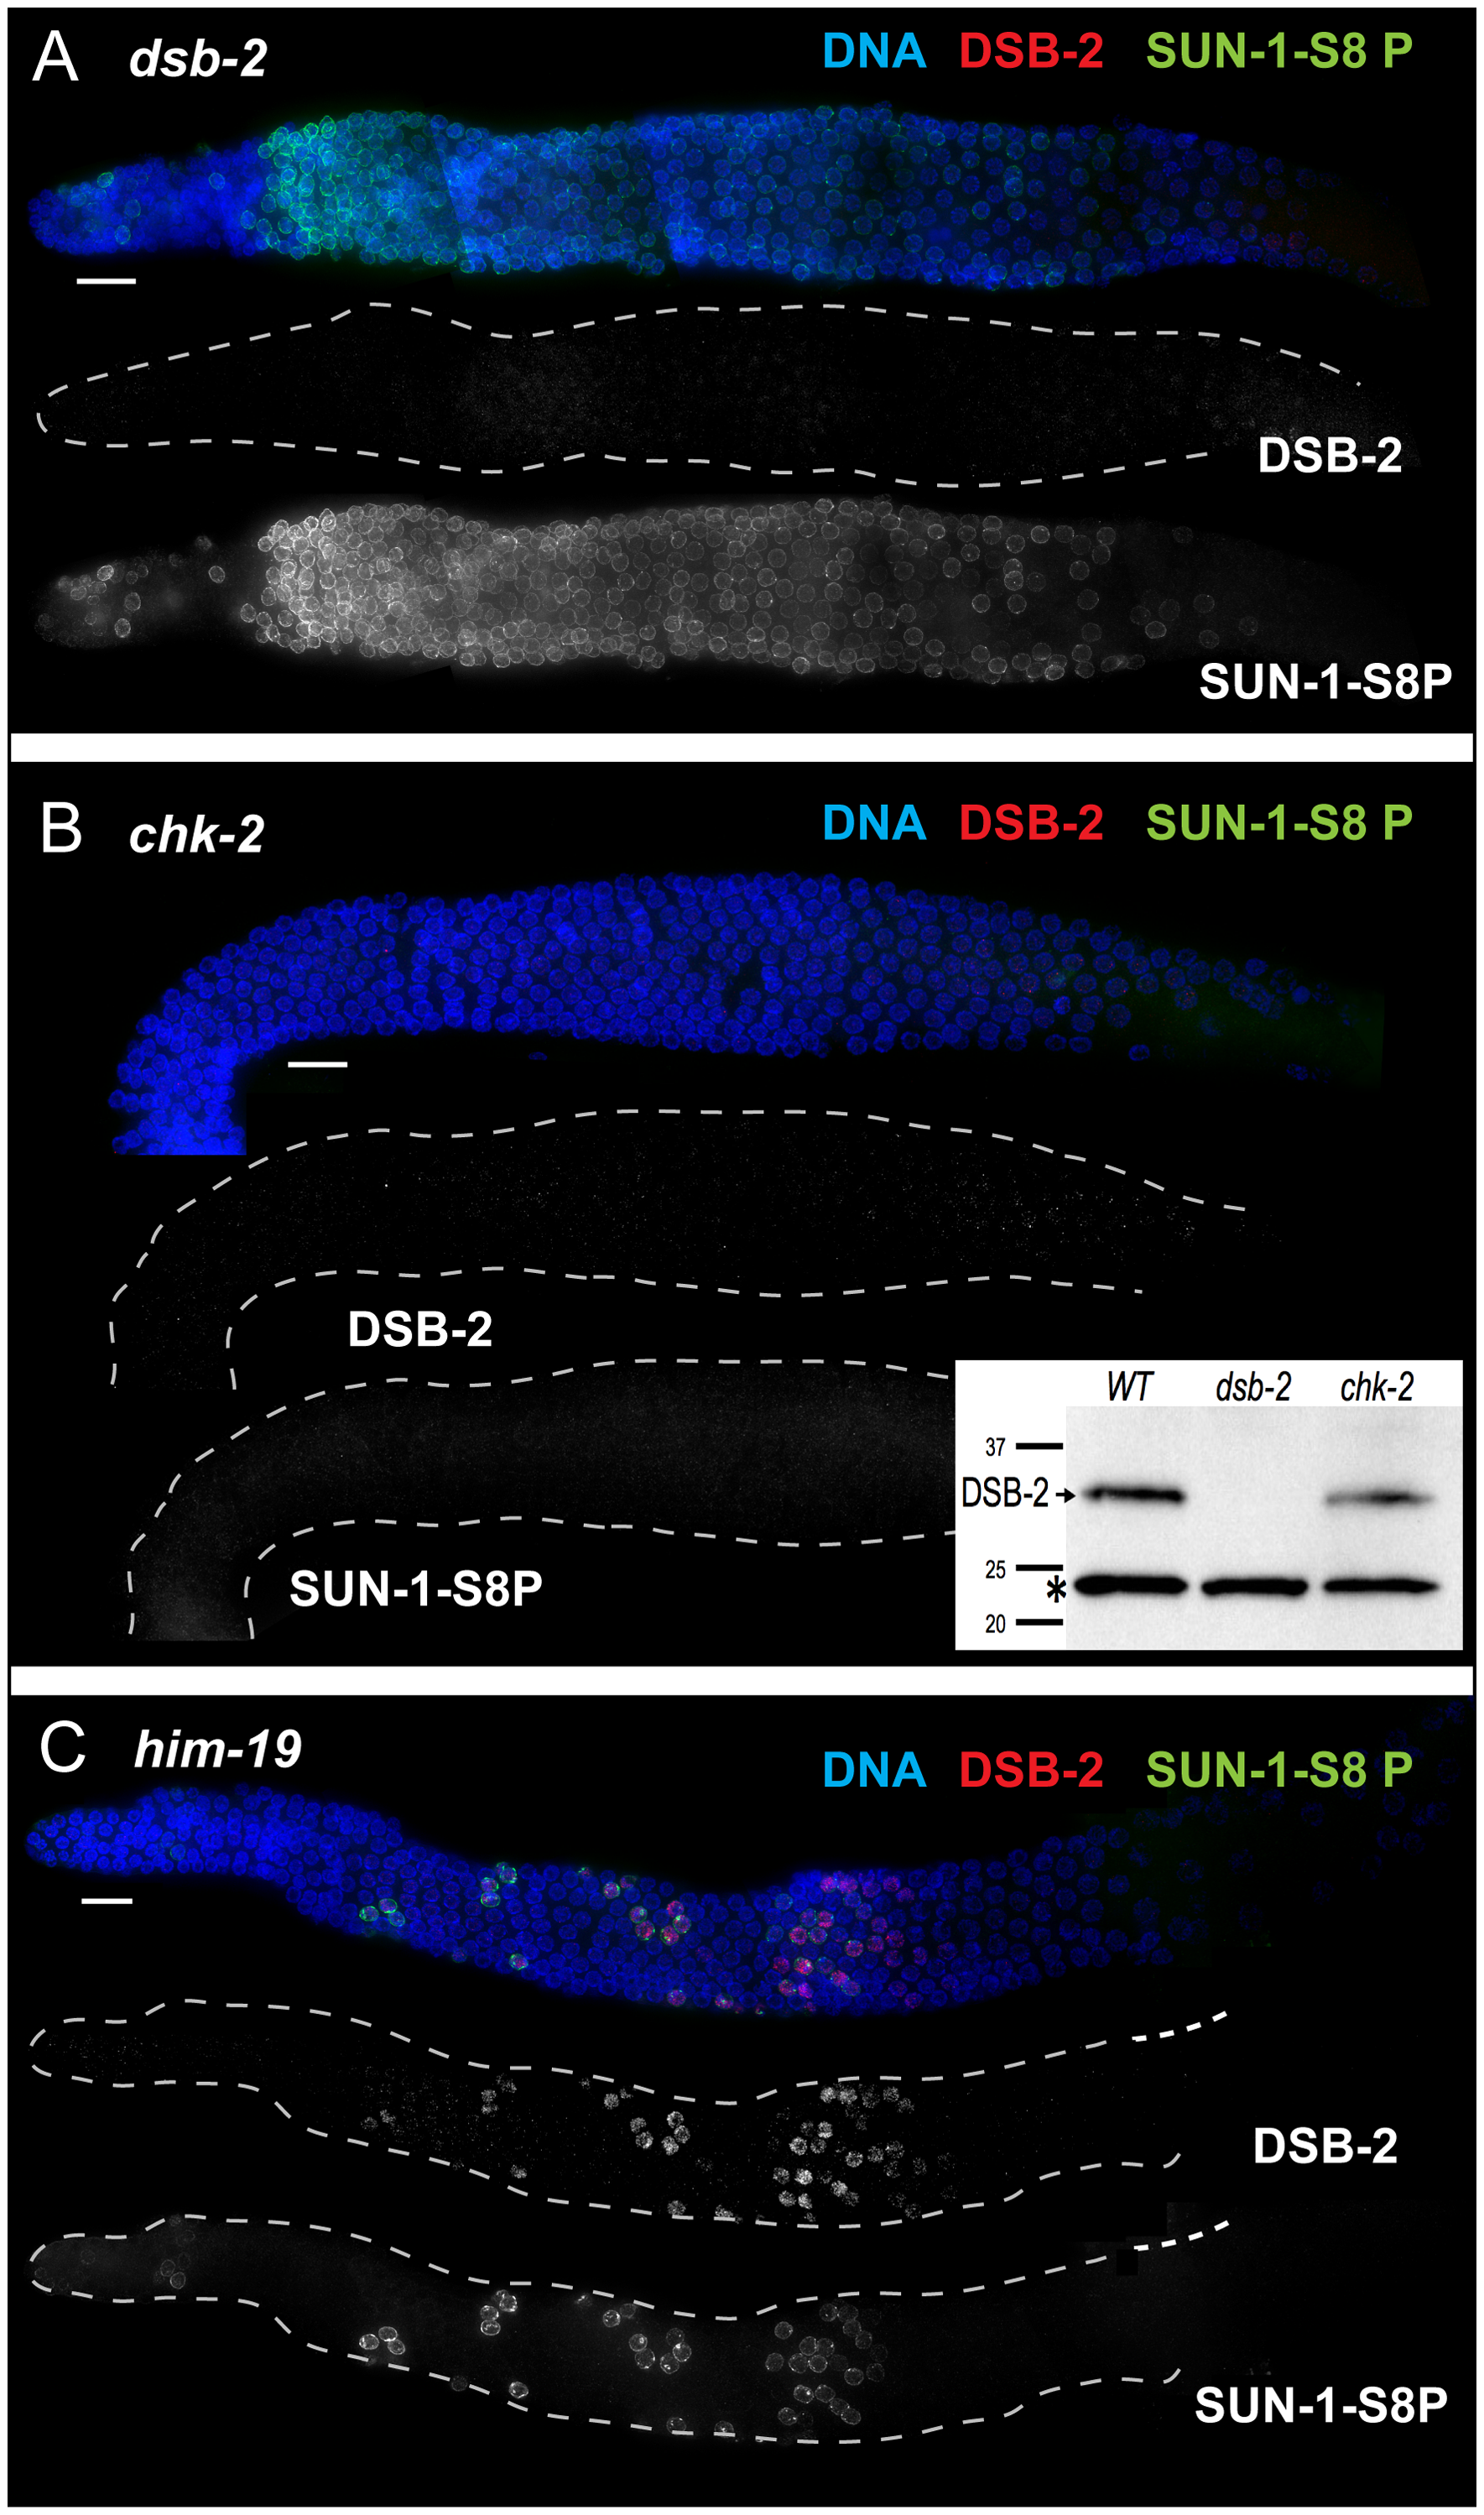 DSB-2 and SUN-1 S8P are coordinately regulated by common upstream regulator CHK-2.